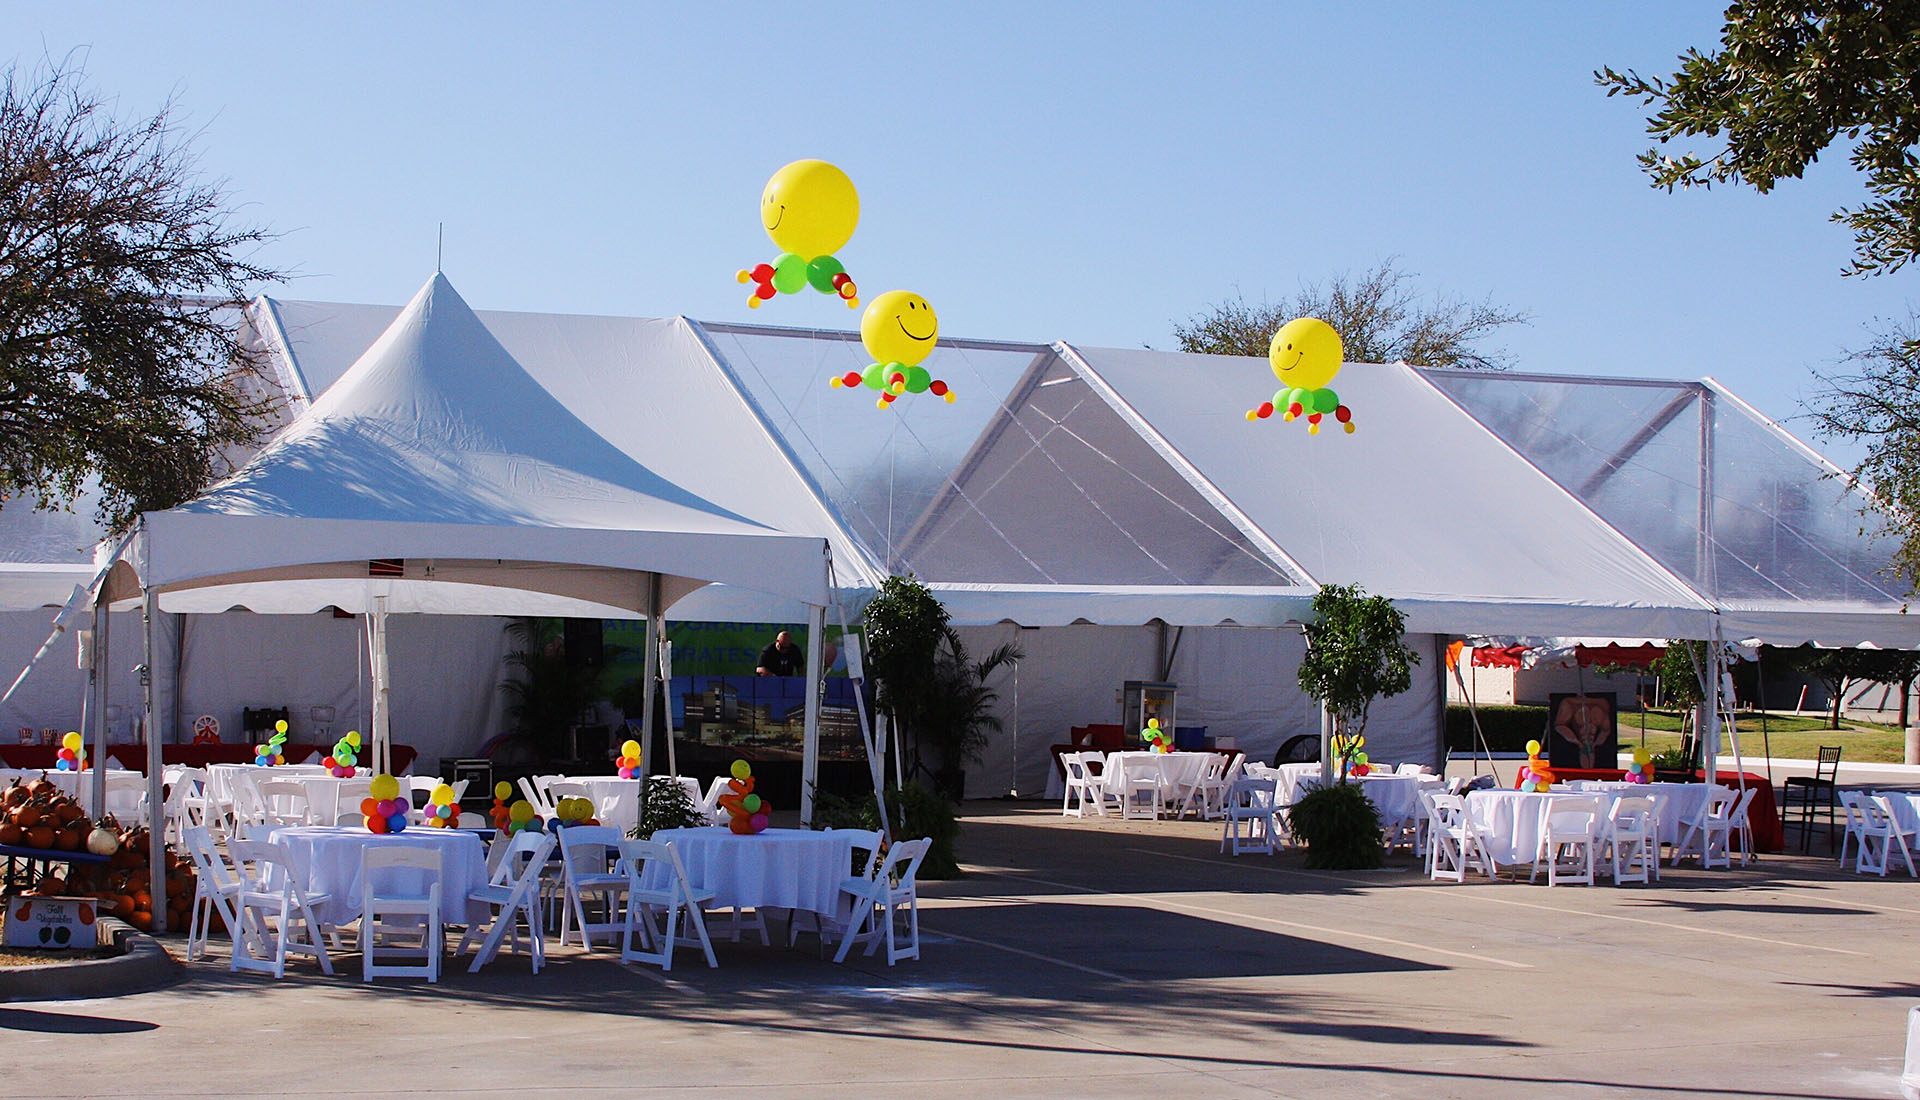 Frame tents and structure tents are better preferred for Between 200 and 500 guests